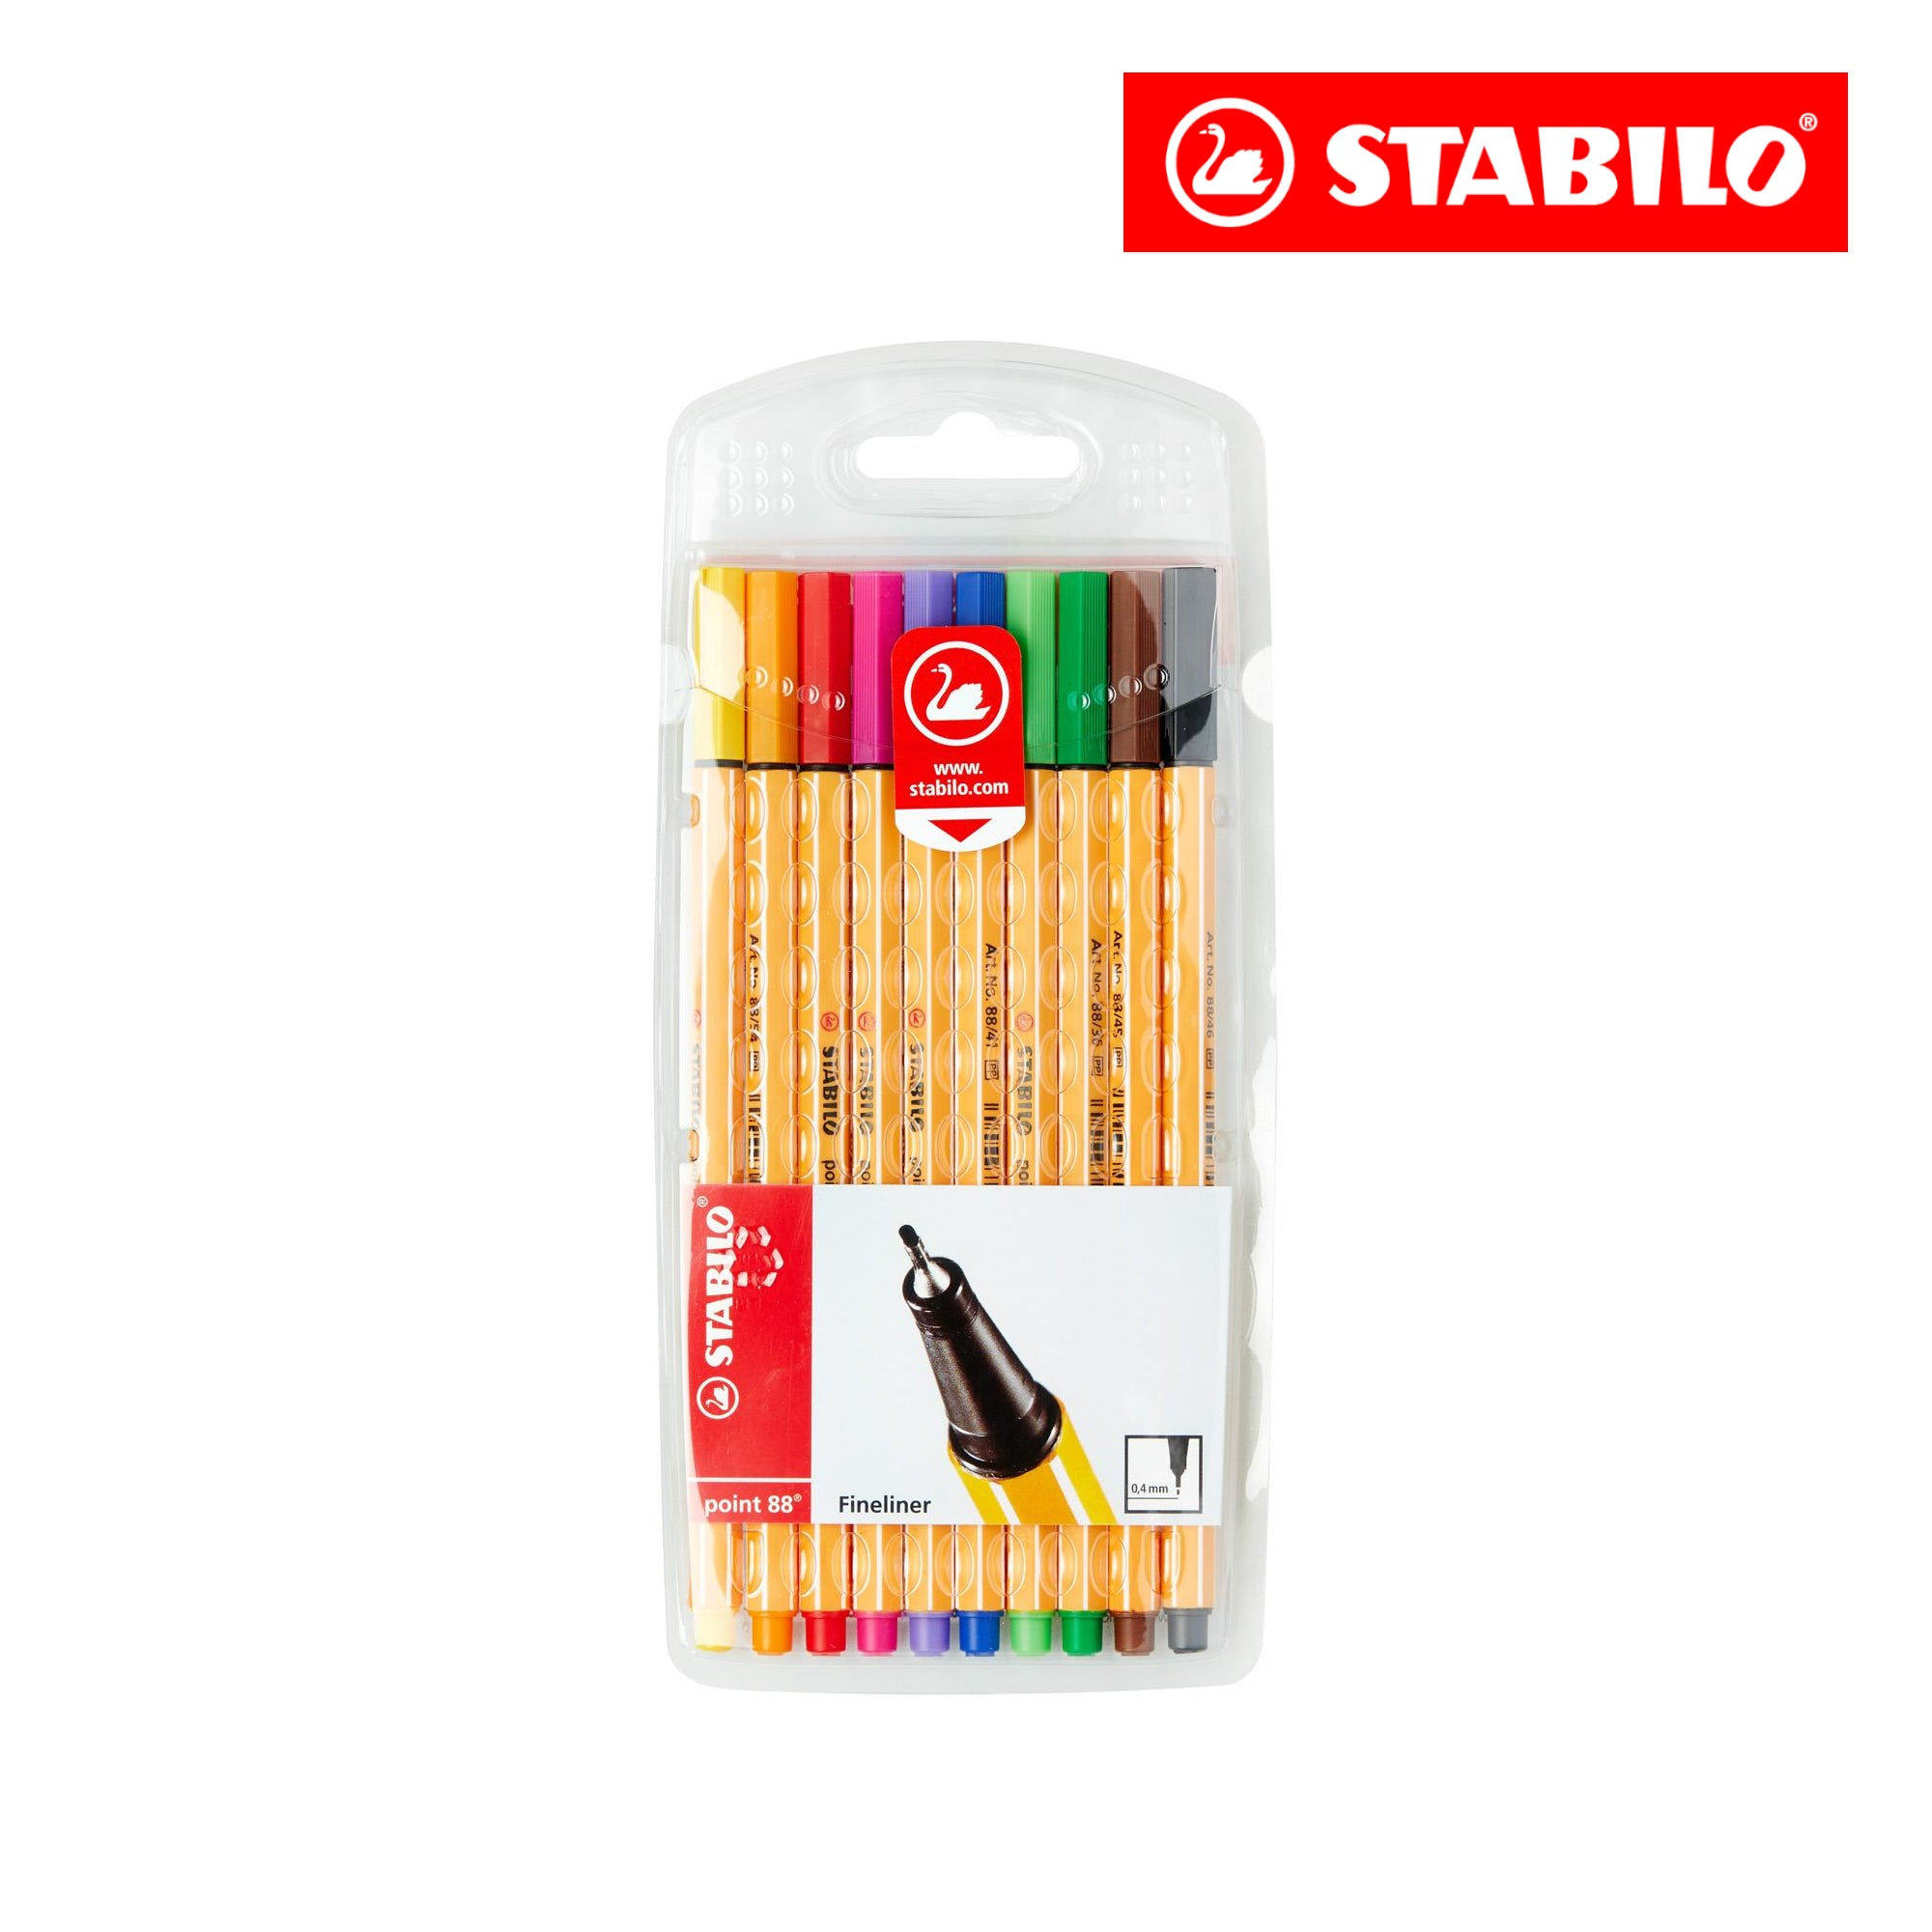 STABILO point88 wallet of 10